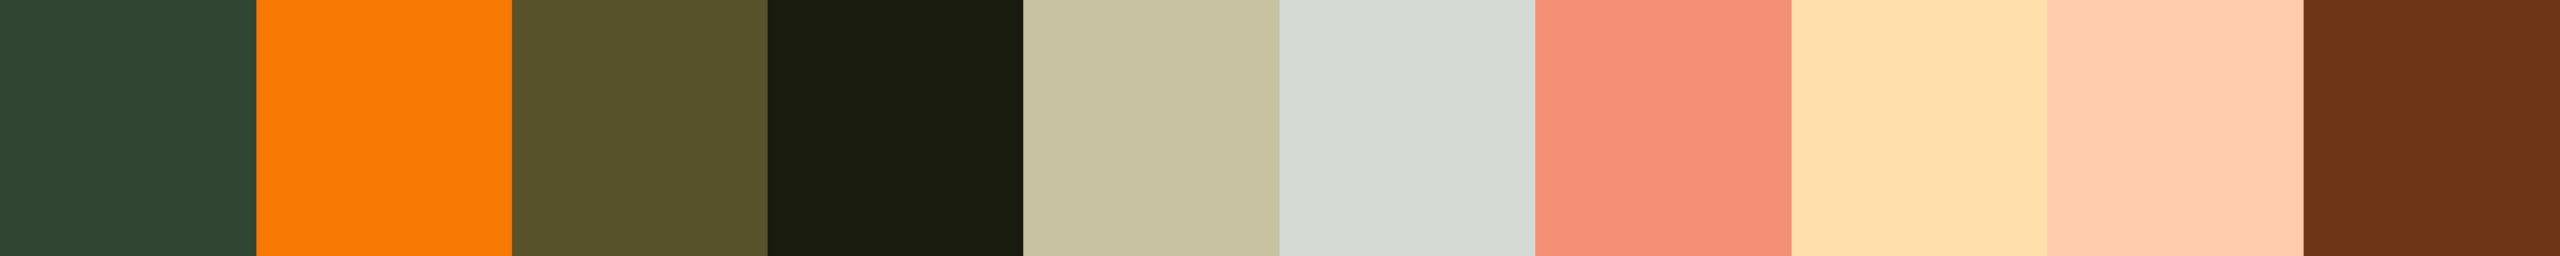 203 Iontiala Color Palette